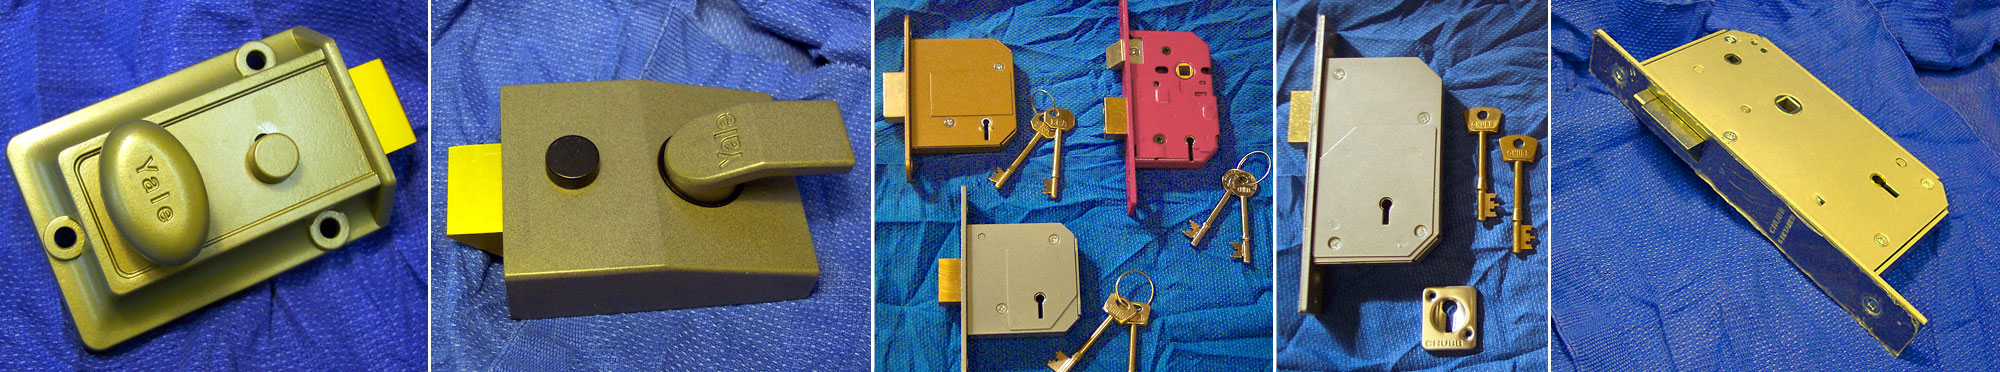 Rim locks, mortice locks, dead locks and latch locks